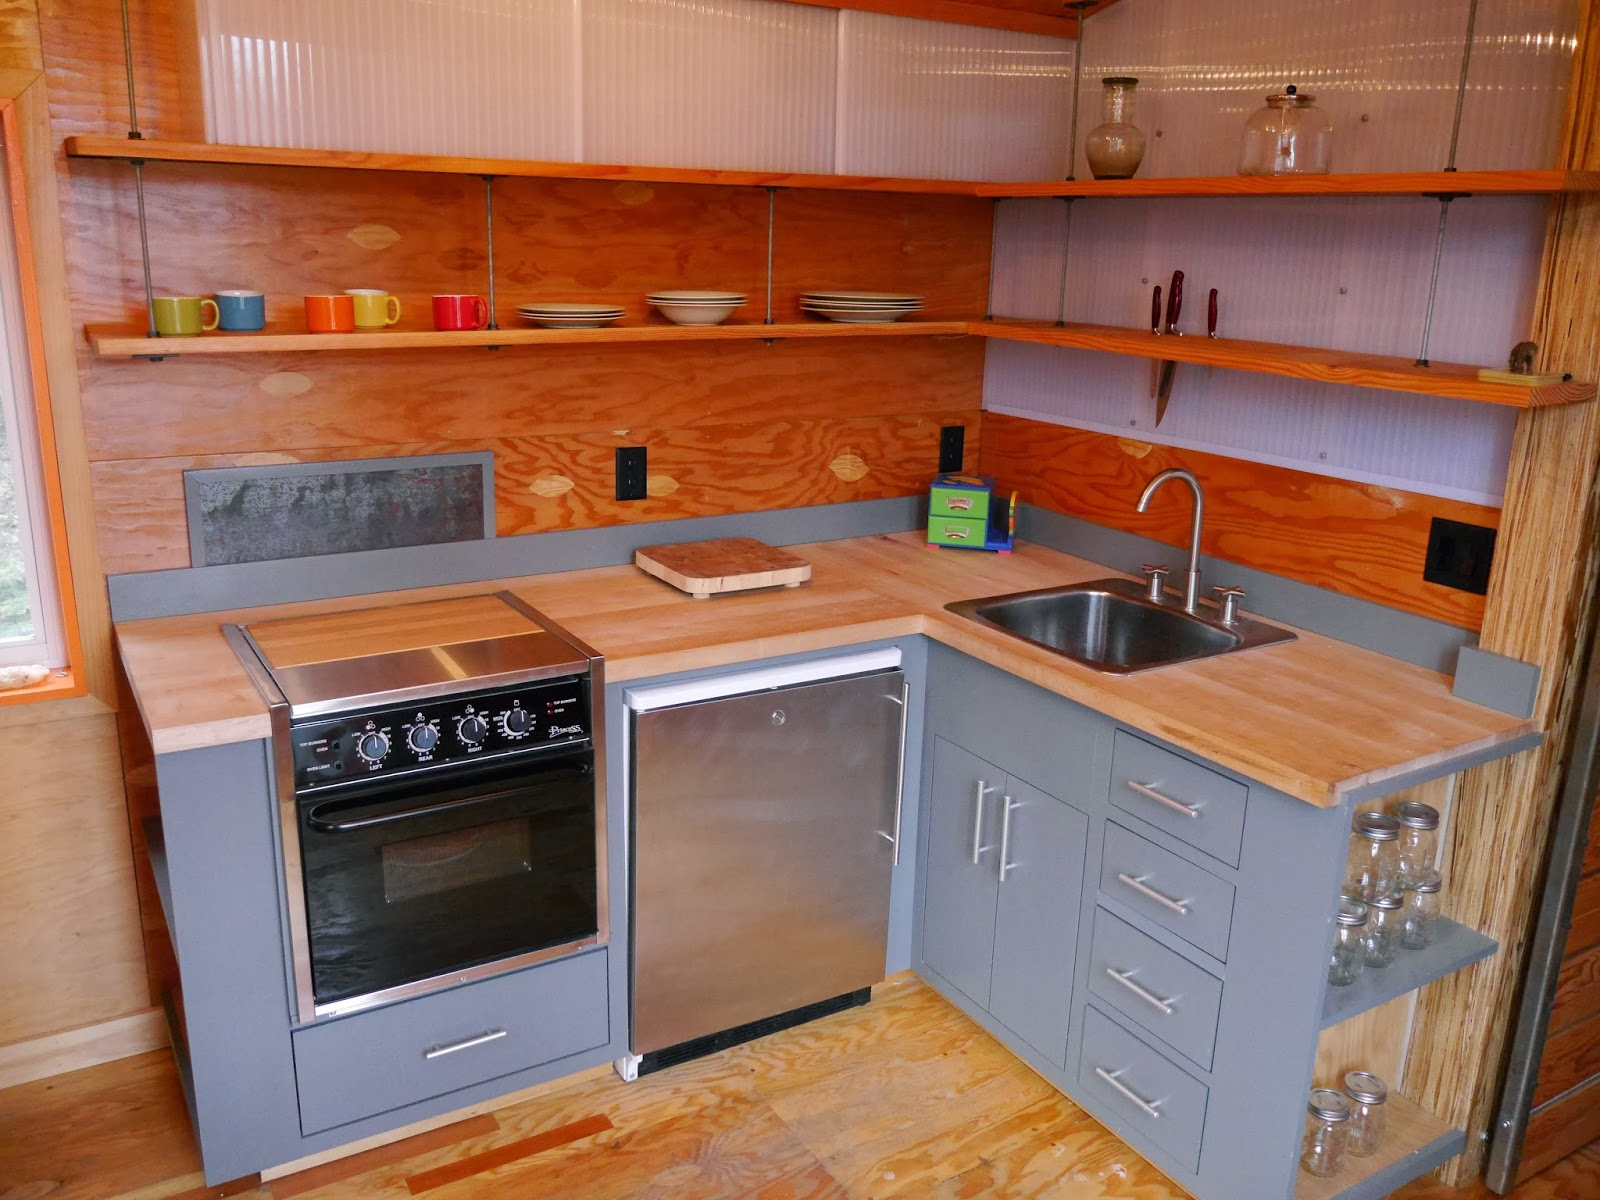 A GREAT Tiny House Modern Kitchen In The 227 And MORE